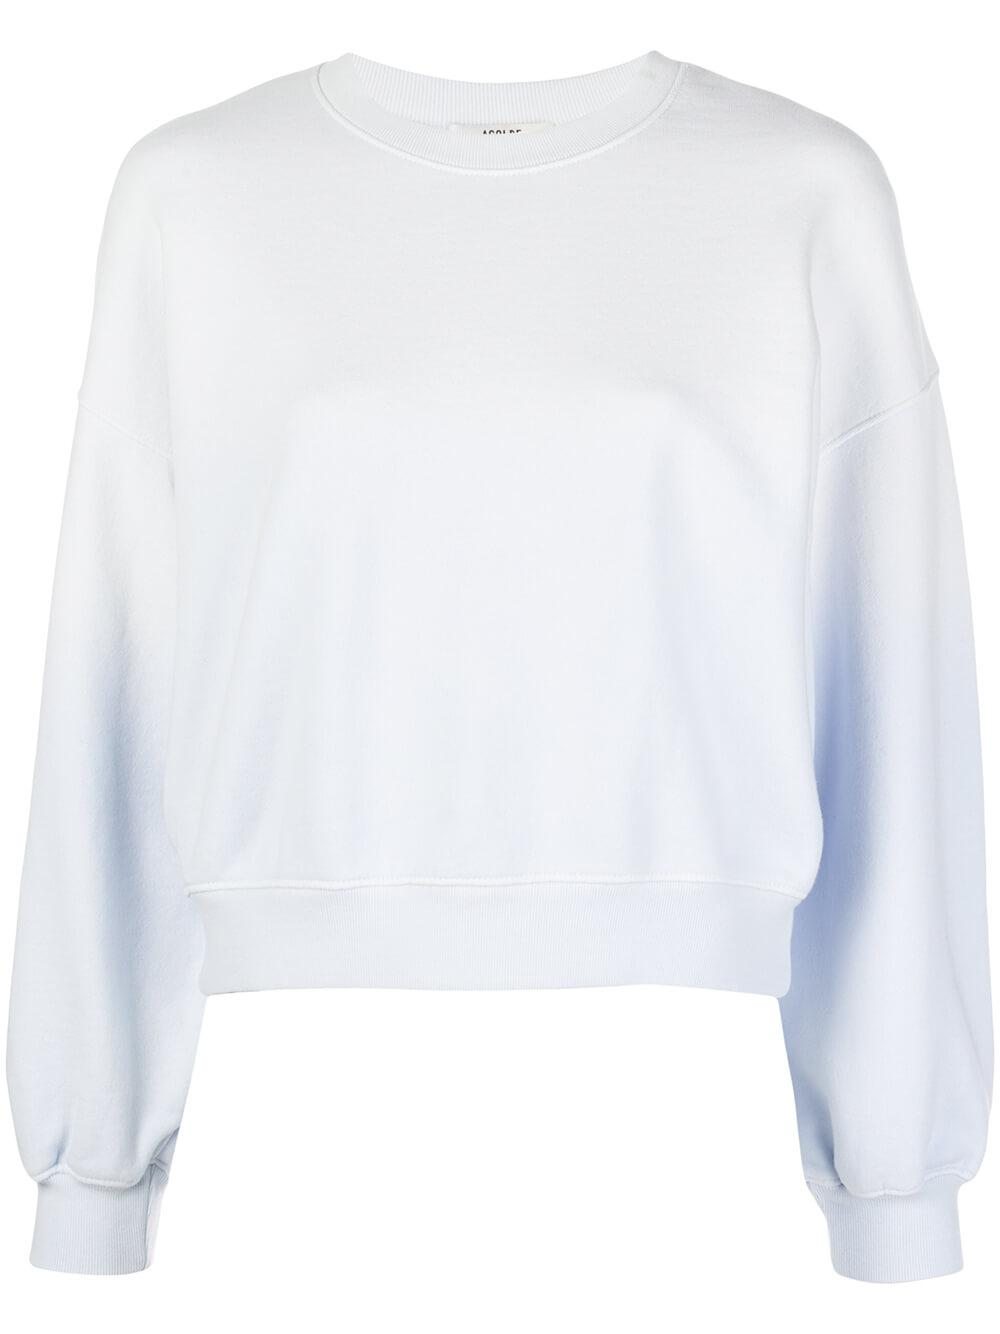 Balloon Sleeve Ombre Sweatshirt